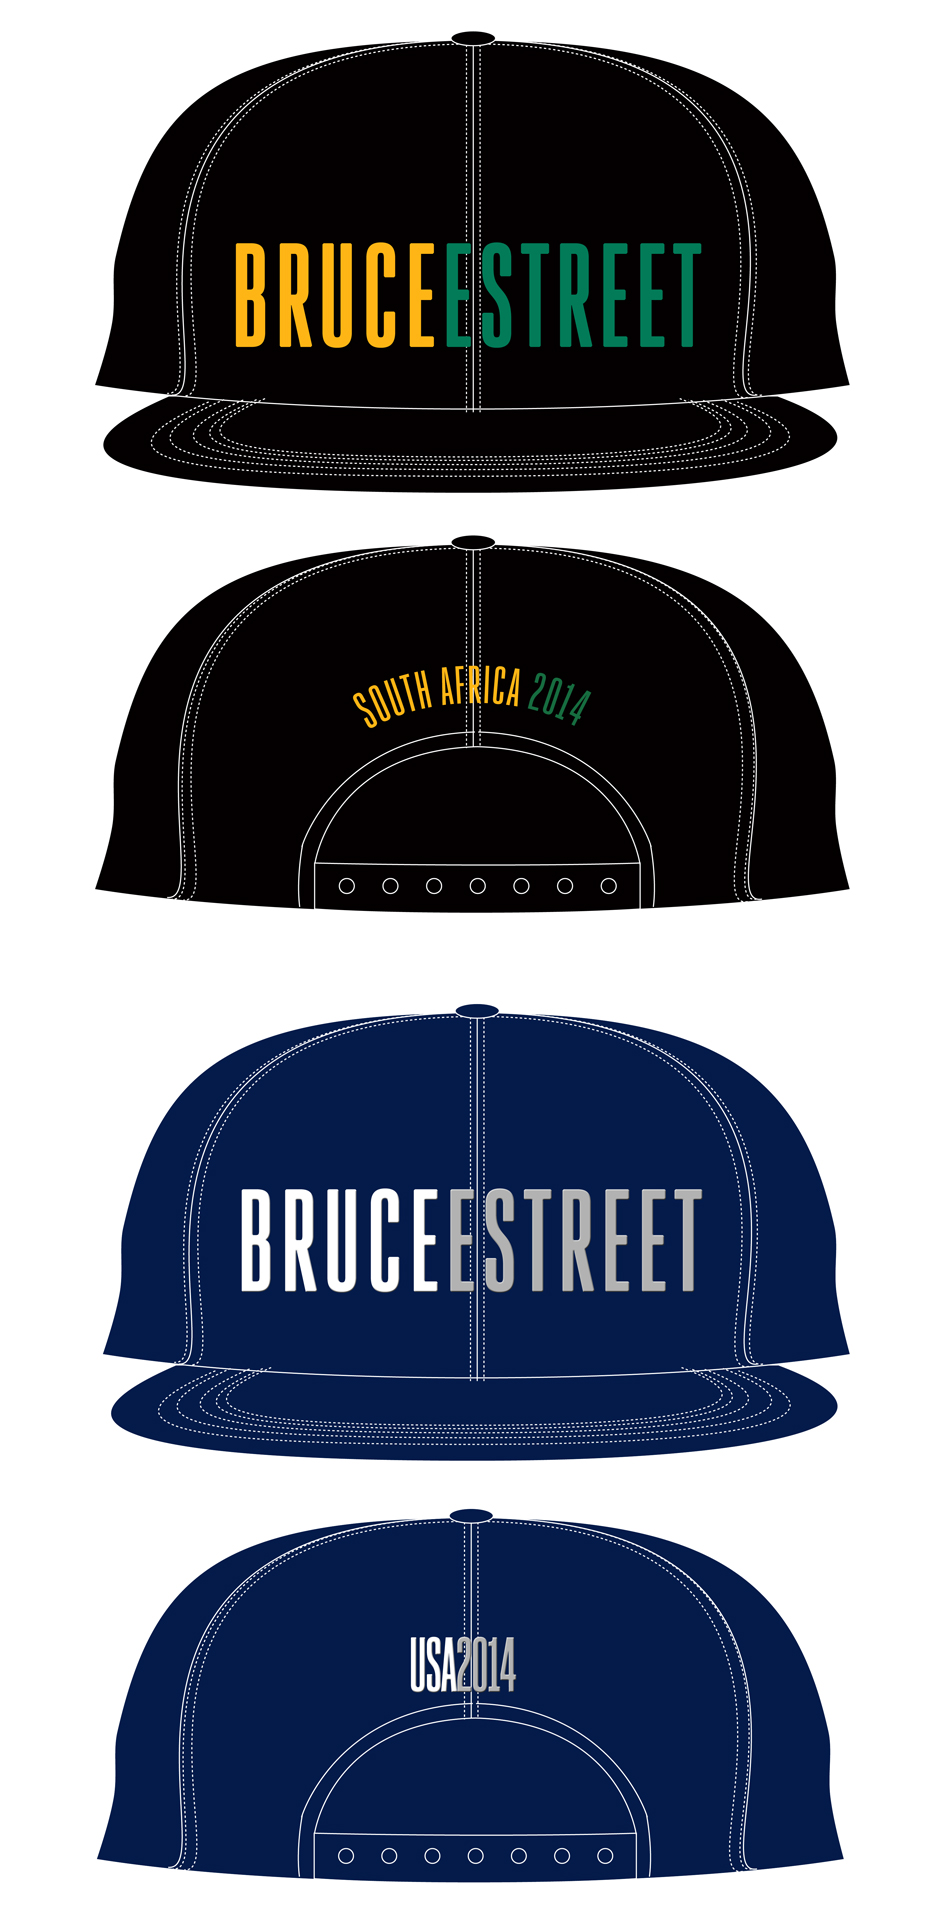 South Africa and US baseball caps